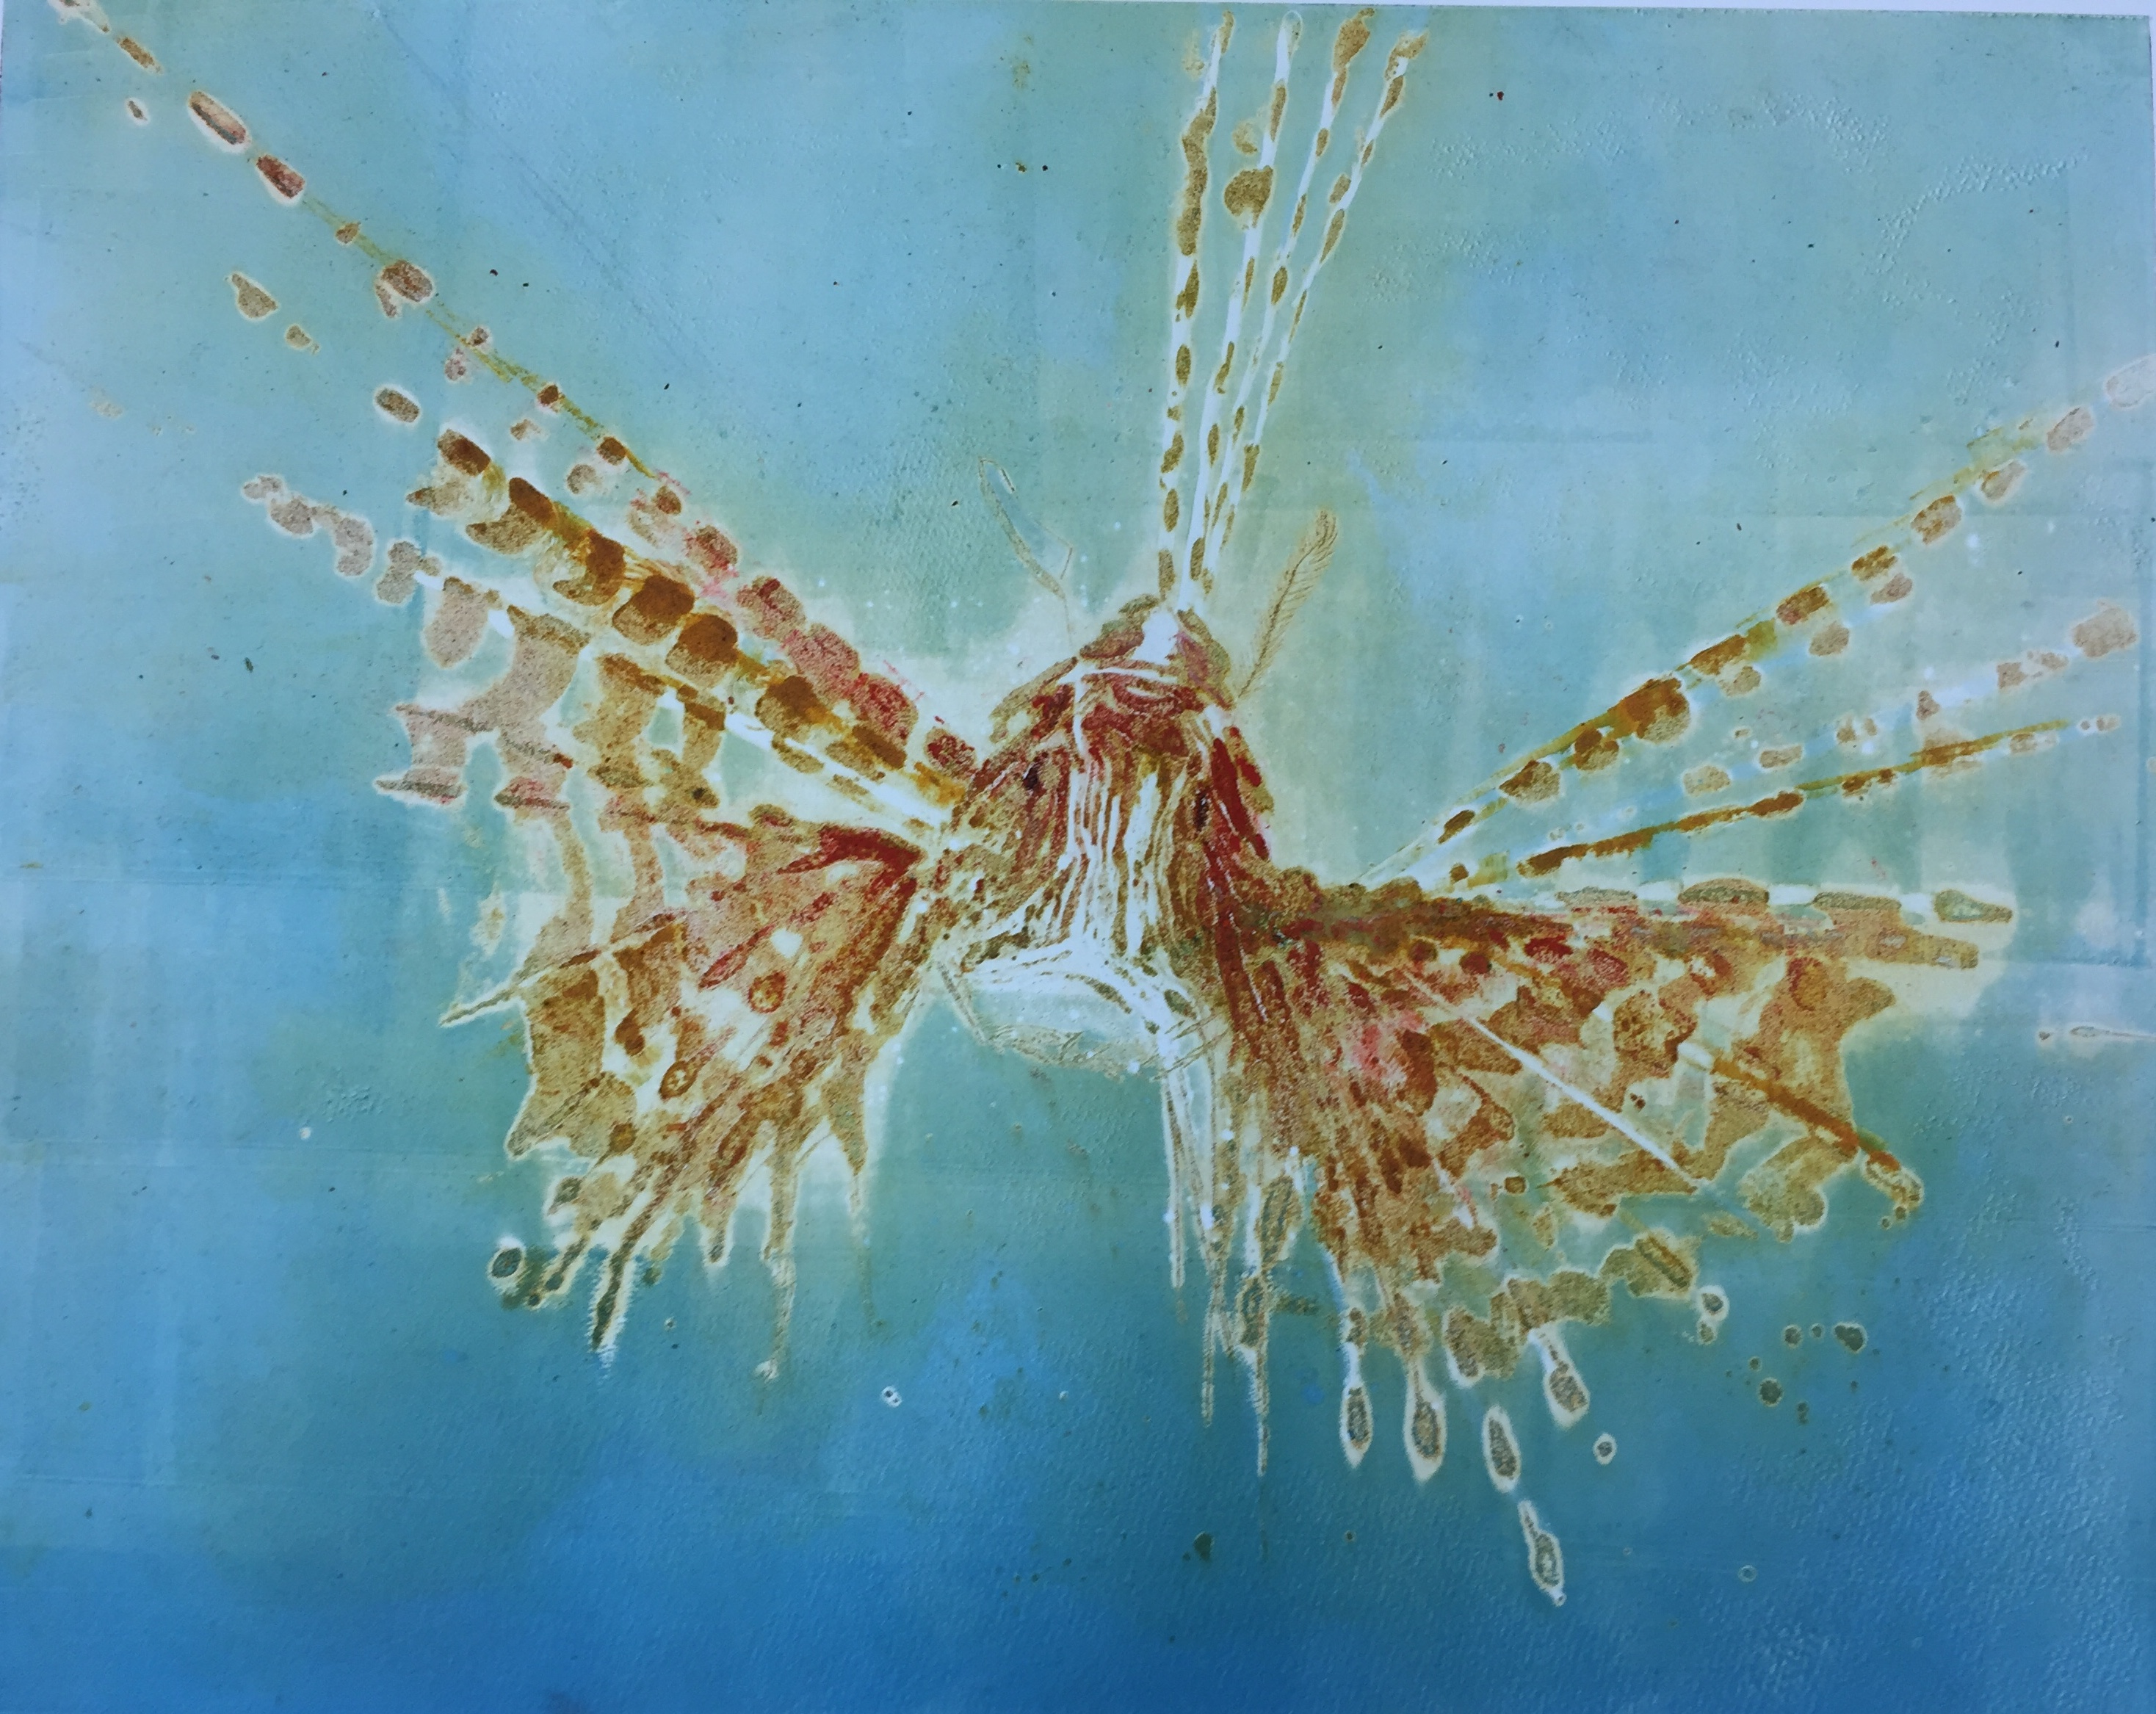 60.Pterois II